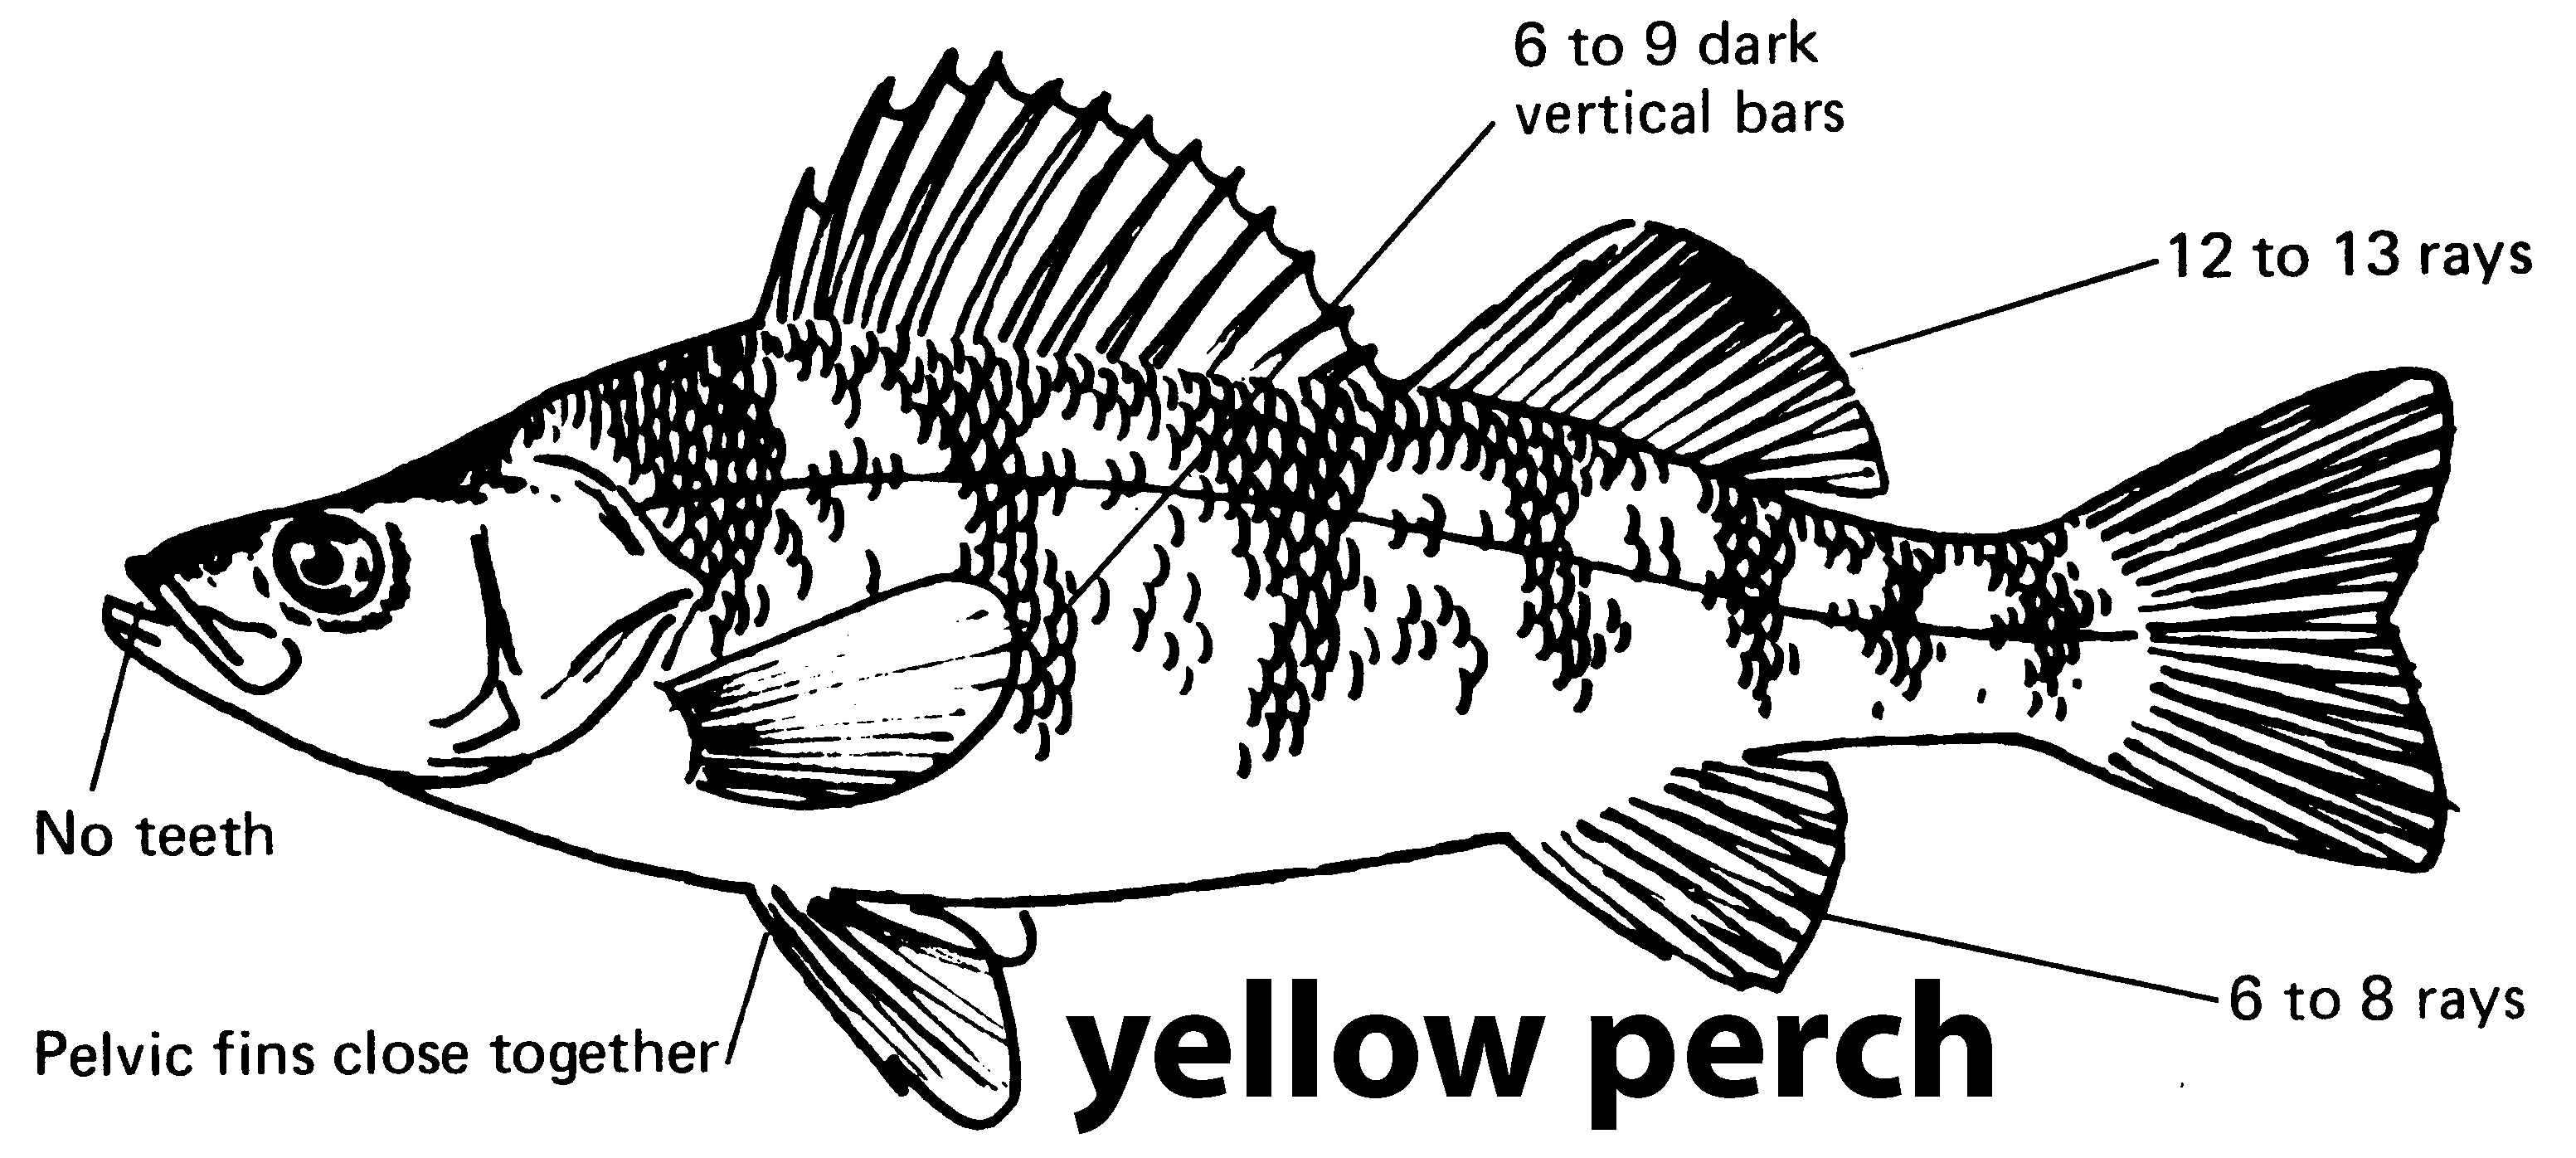 characteristics of a yellow perch